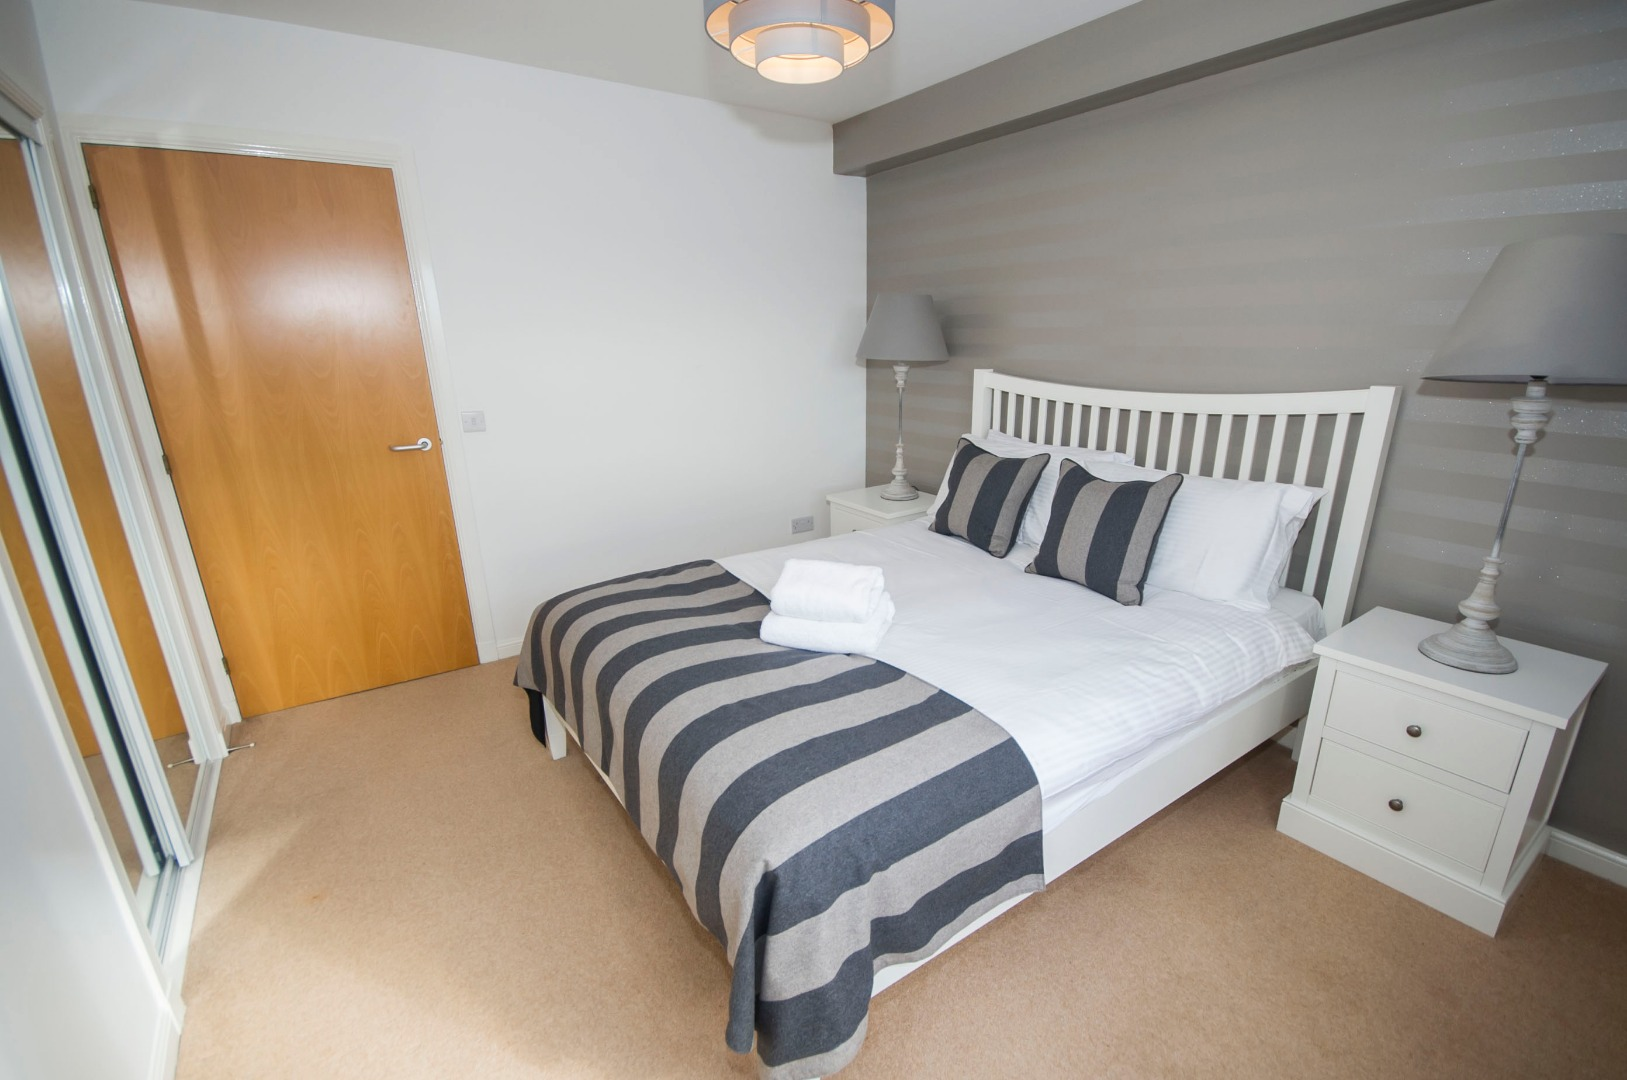 Aberdeen-Corporate-Luxury-Accommodation---Portland-Street-Apartments-Near-Union-Square-Shopping-Centre---Urban-Stay-1